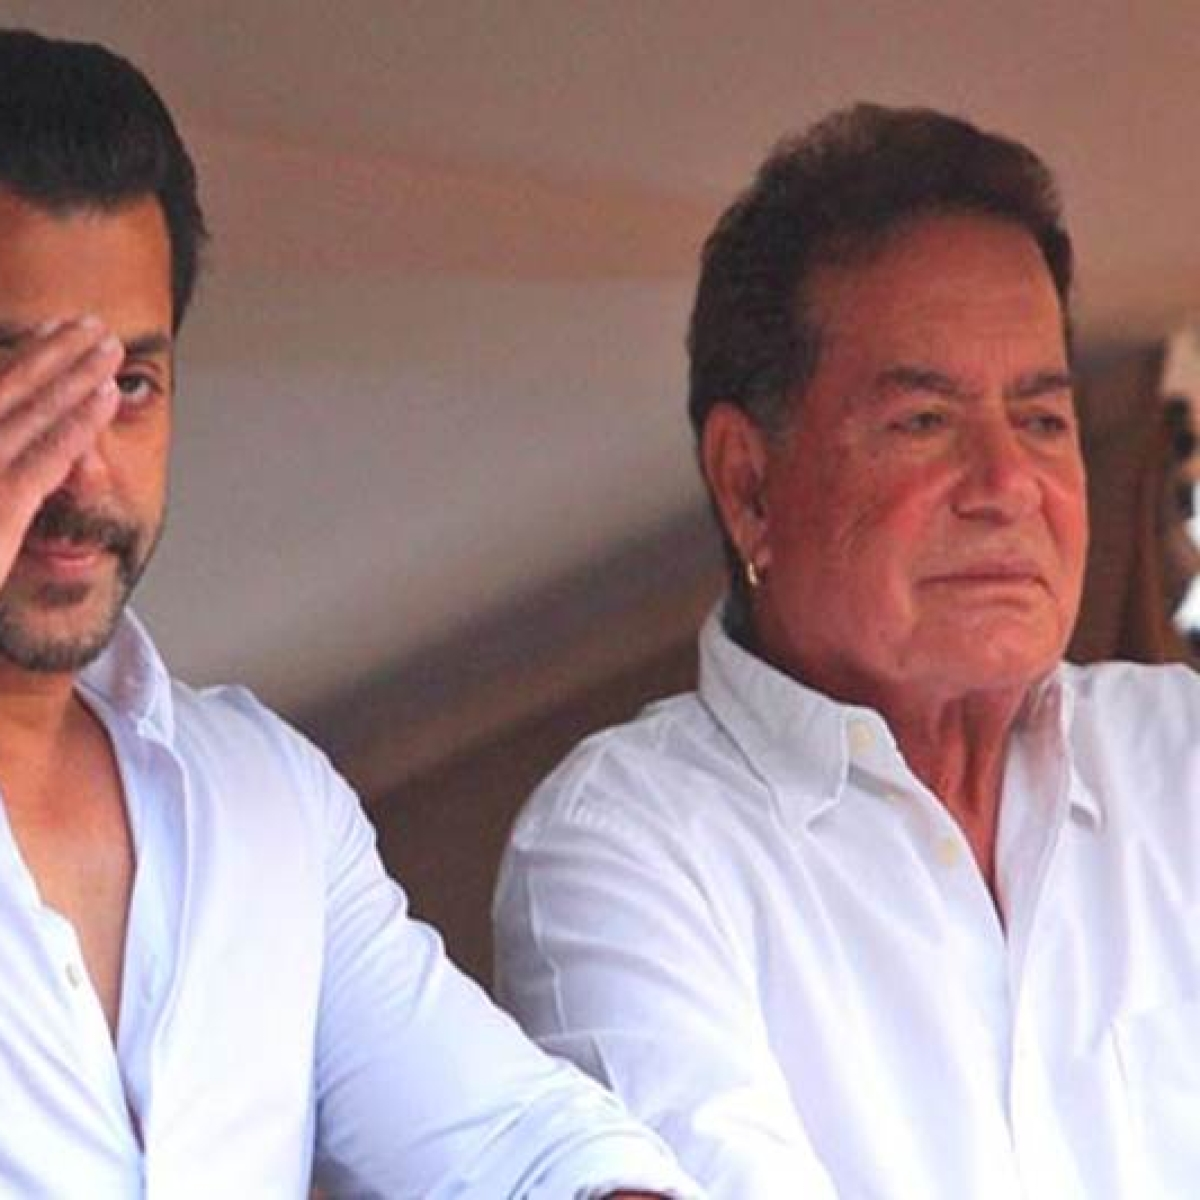 Salim Khan on Abhinav Kashyap's allegations: 'We will not waste time in reacting to what he says'